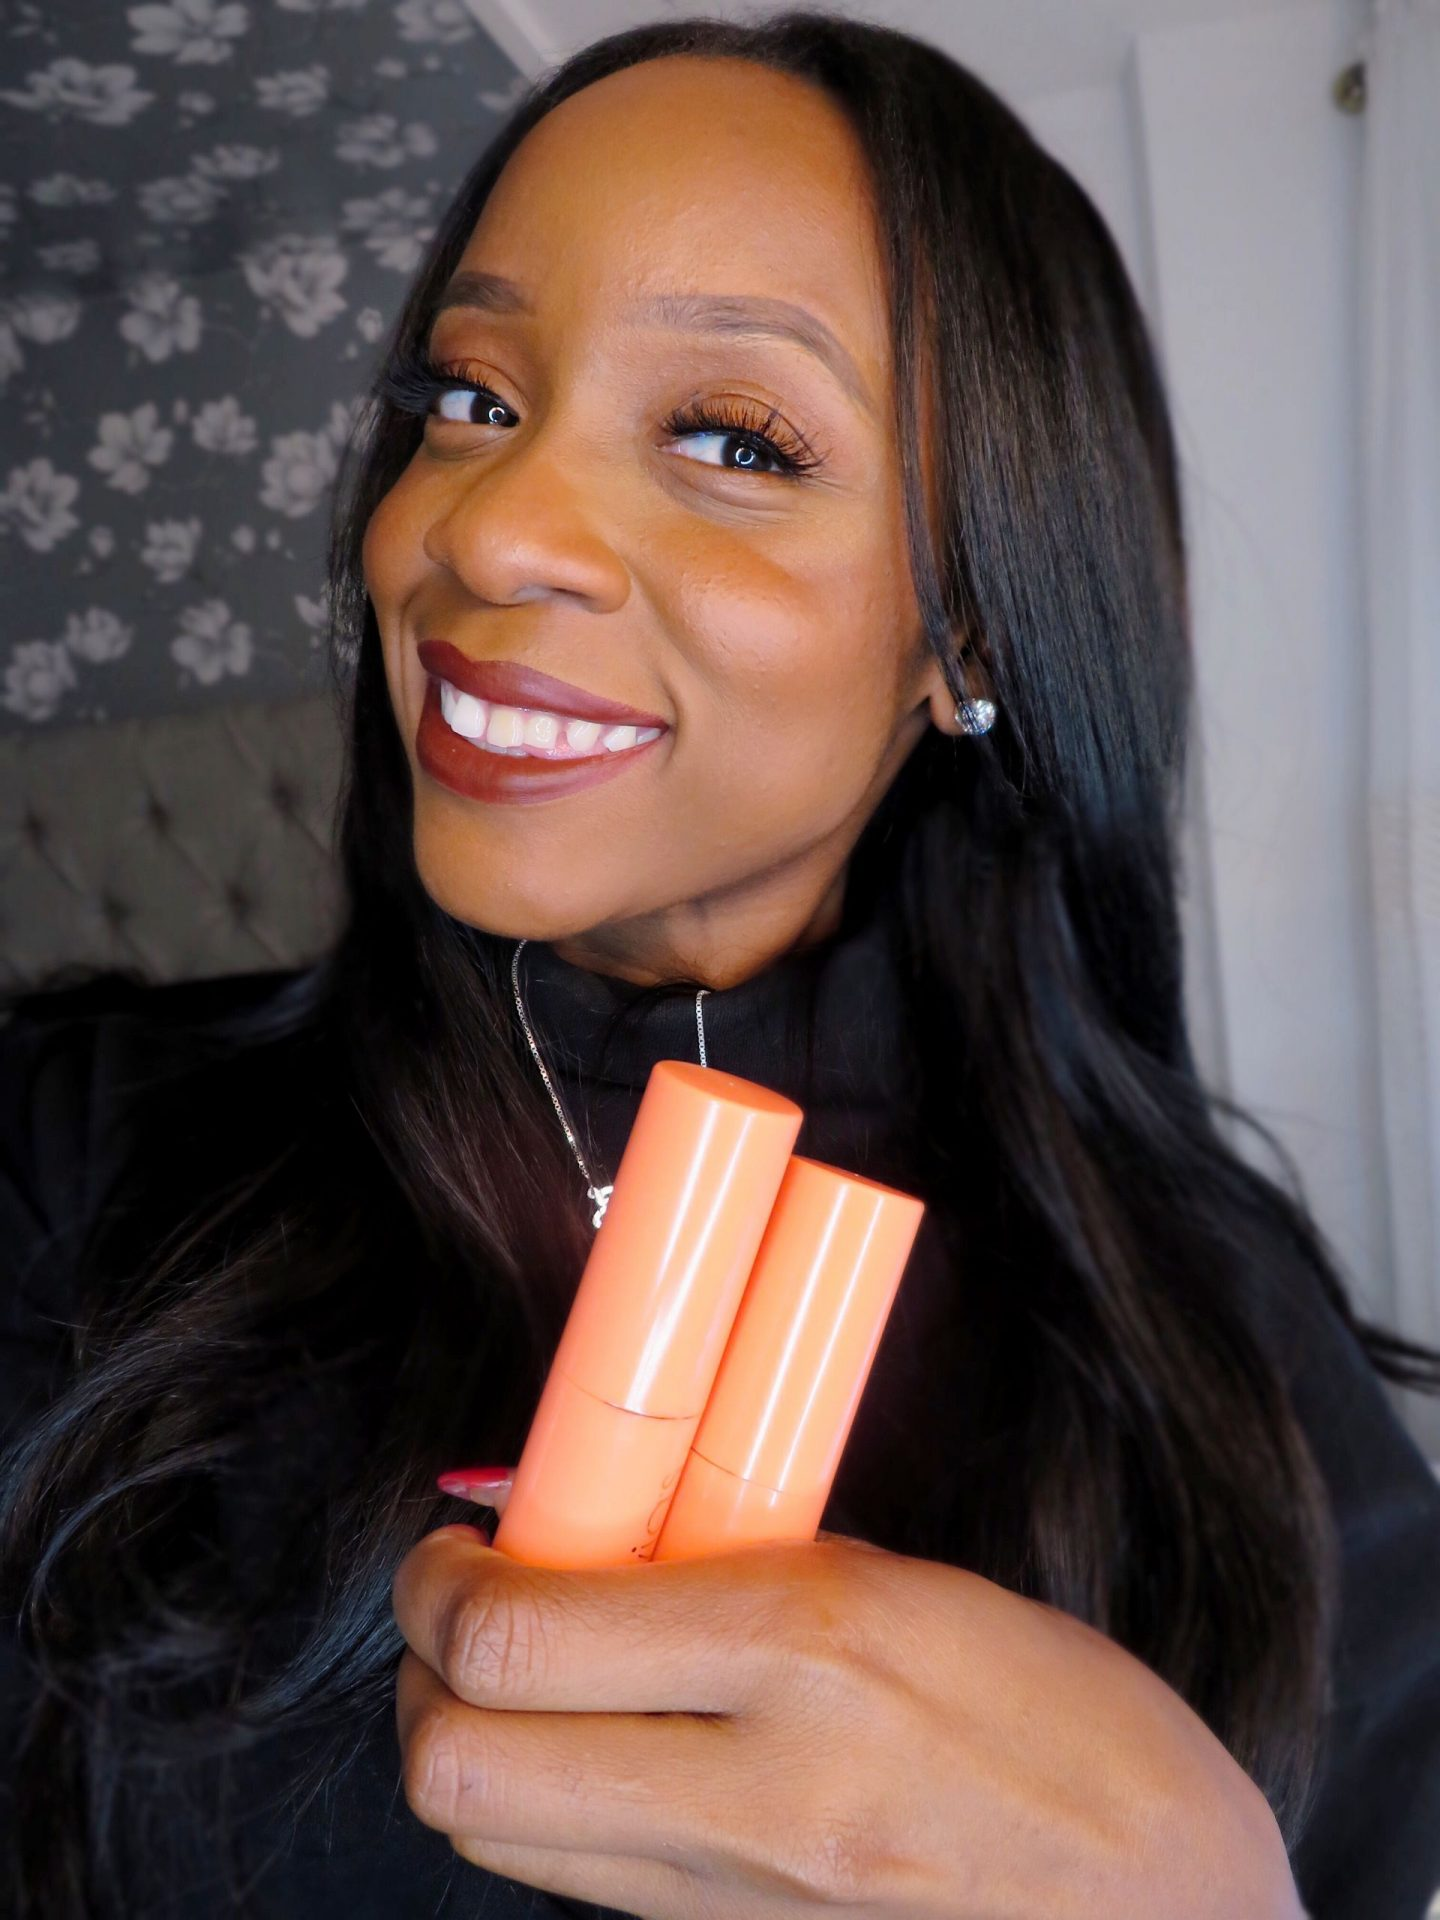 #FoundationTalkTuesdays Juvias Place Shade Sticks Review!